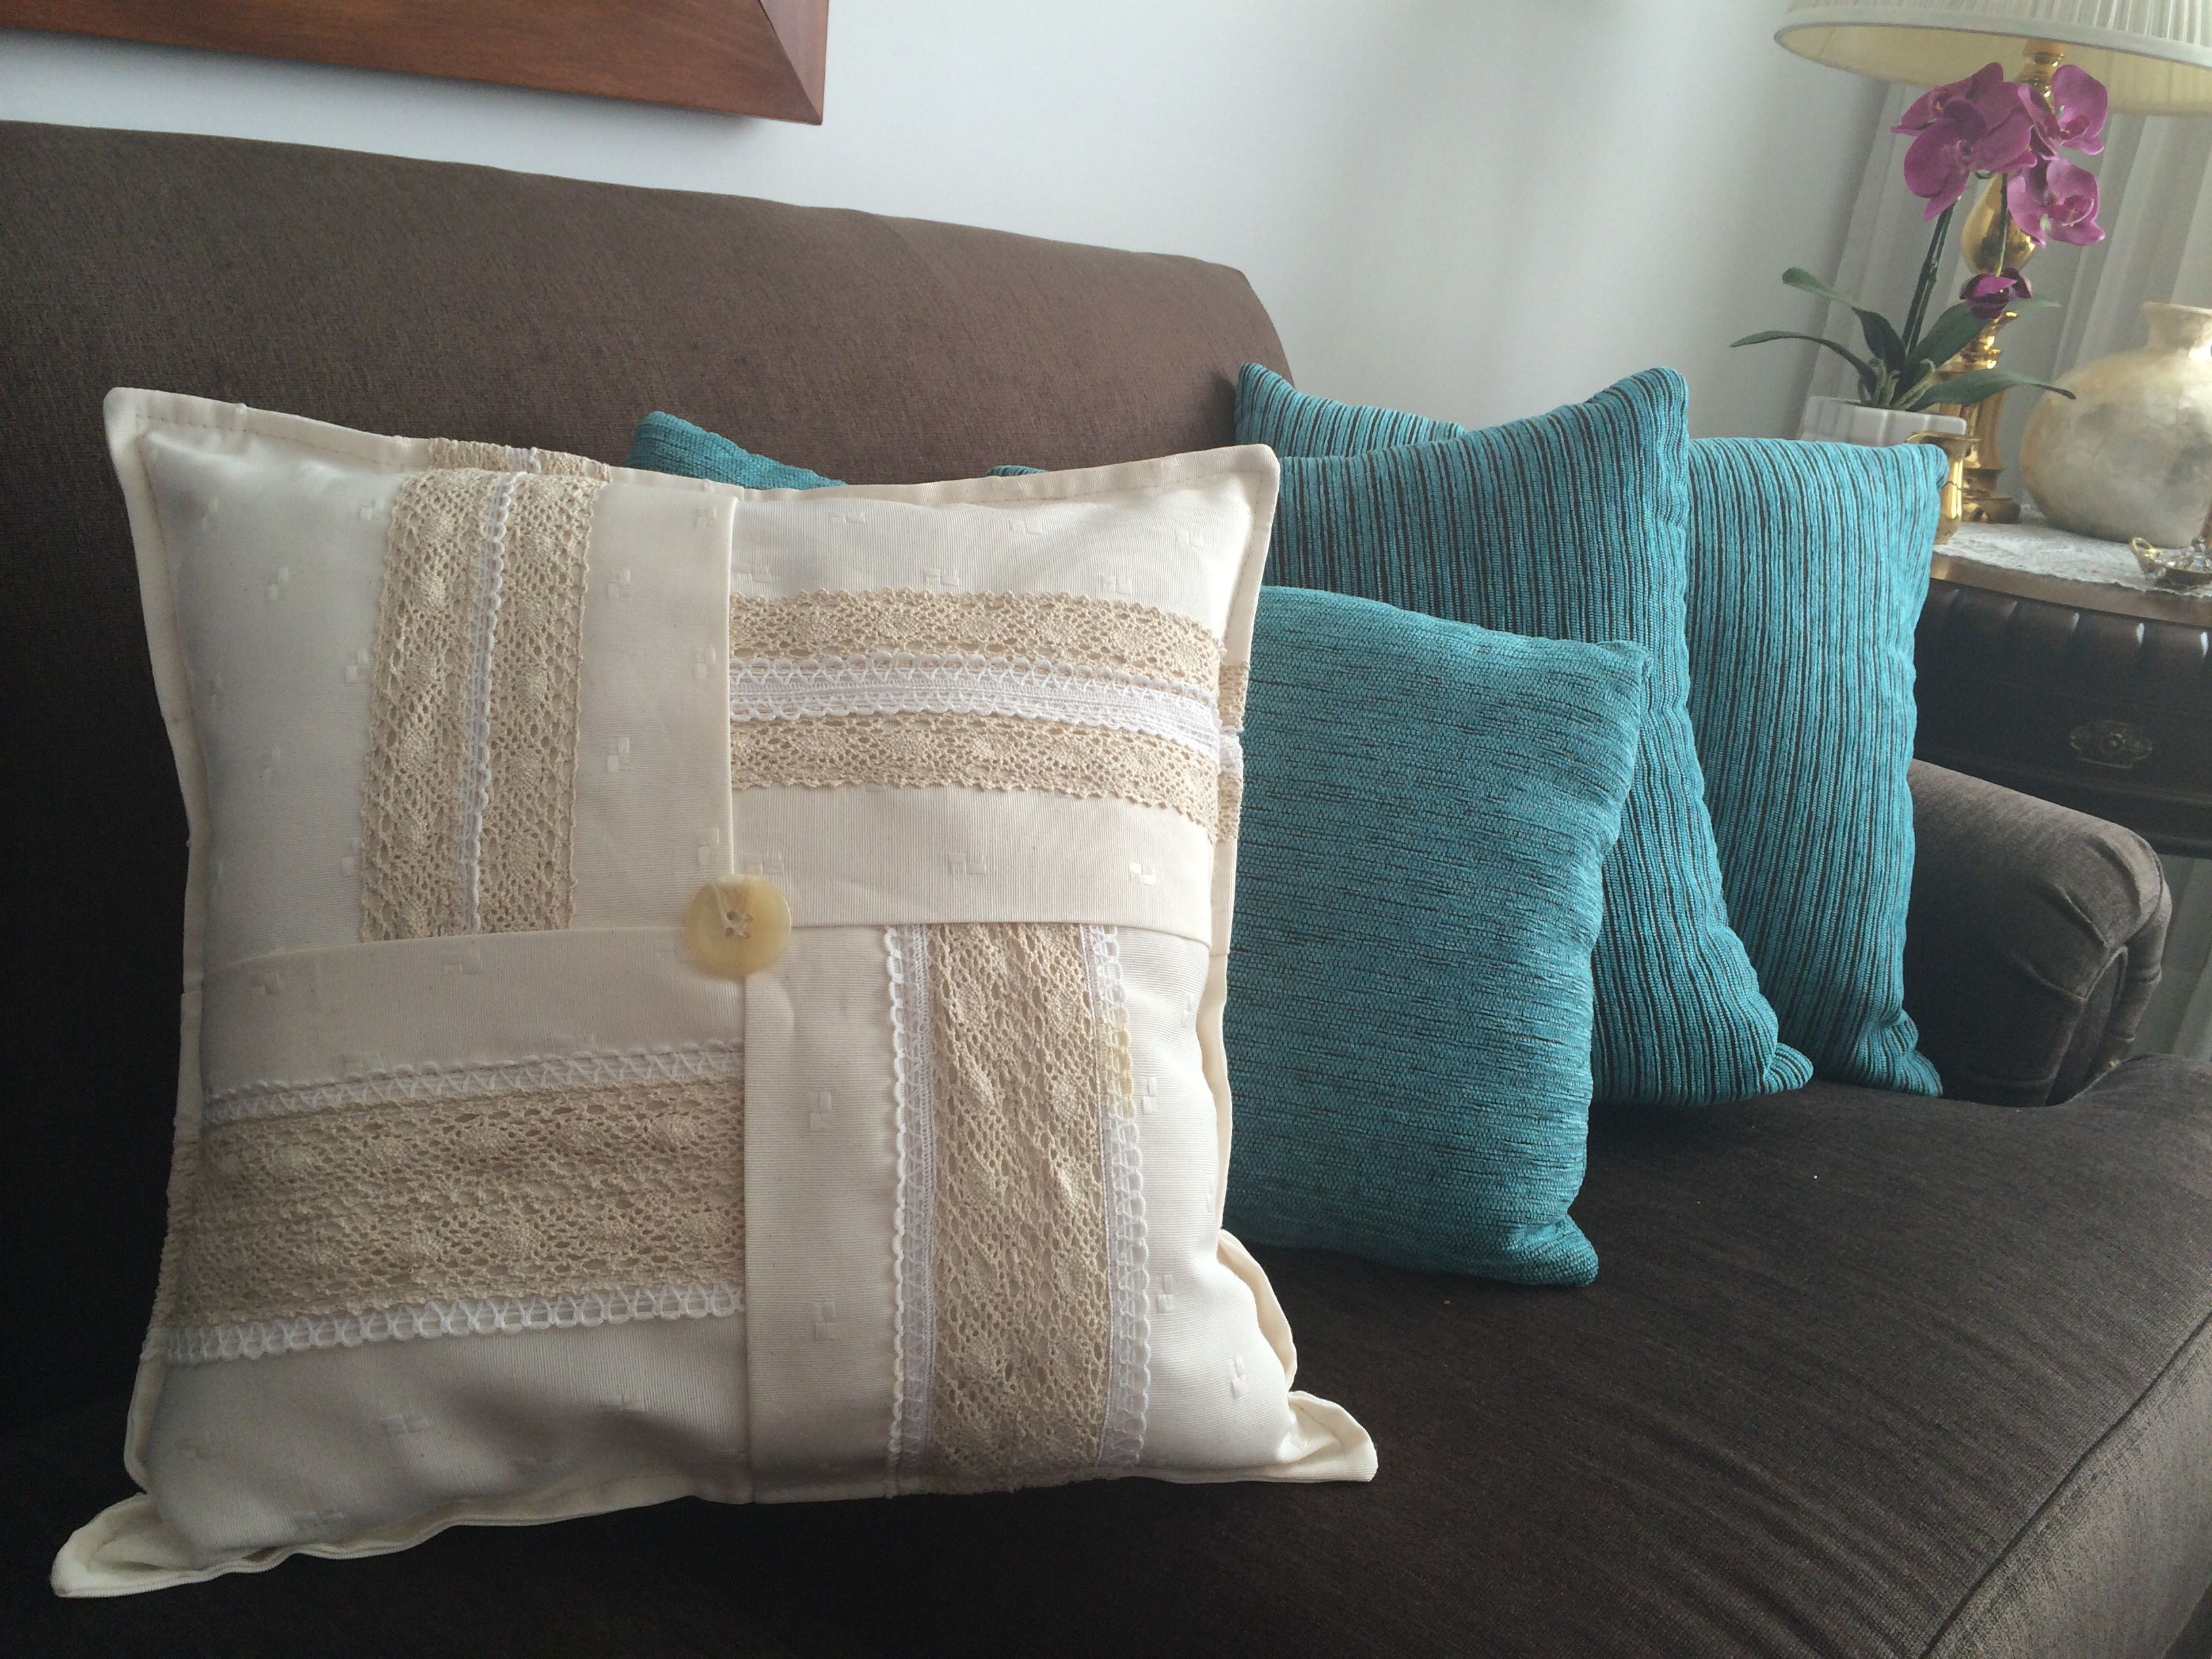 Cojines. Pillows